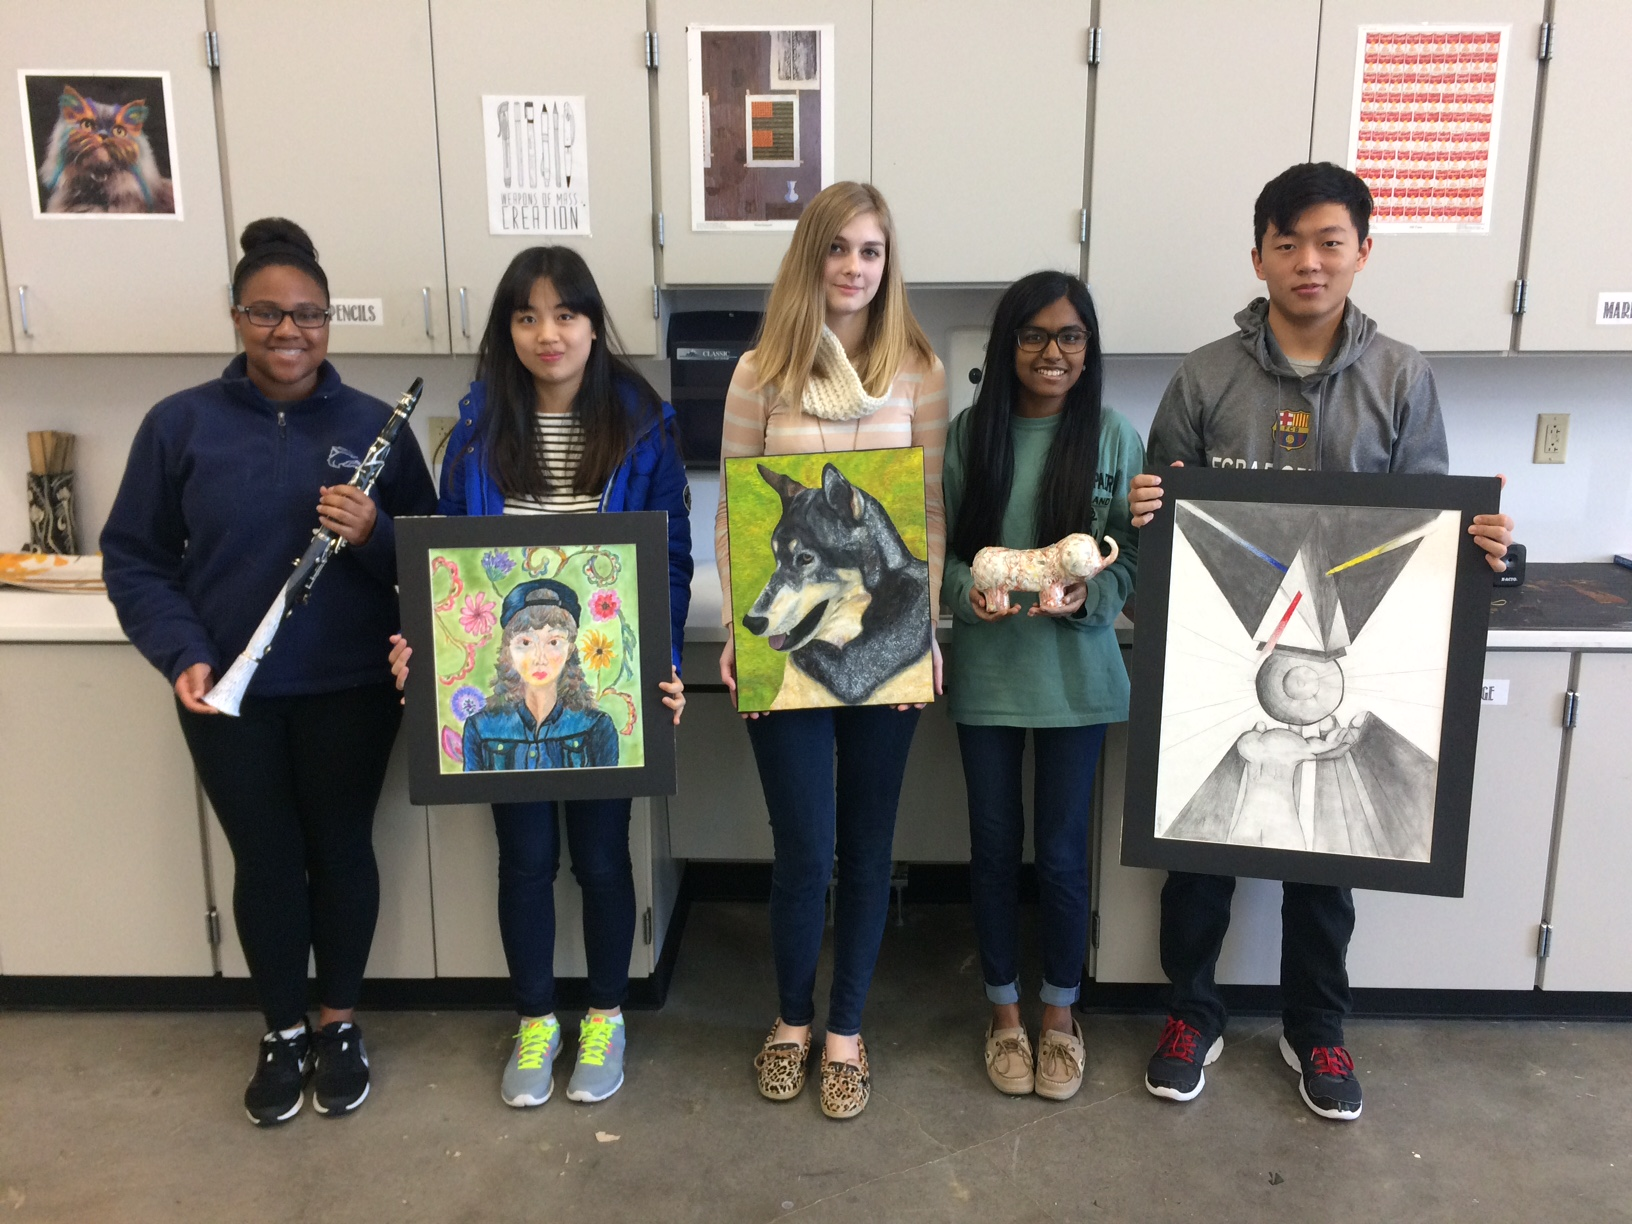 RHS Fine Arts students pose with their art, displaying a clarinet, a sculpture and flat artwork